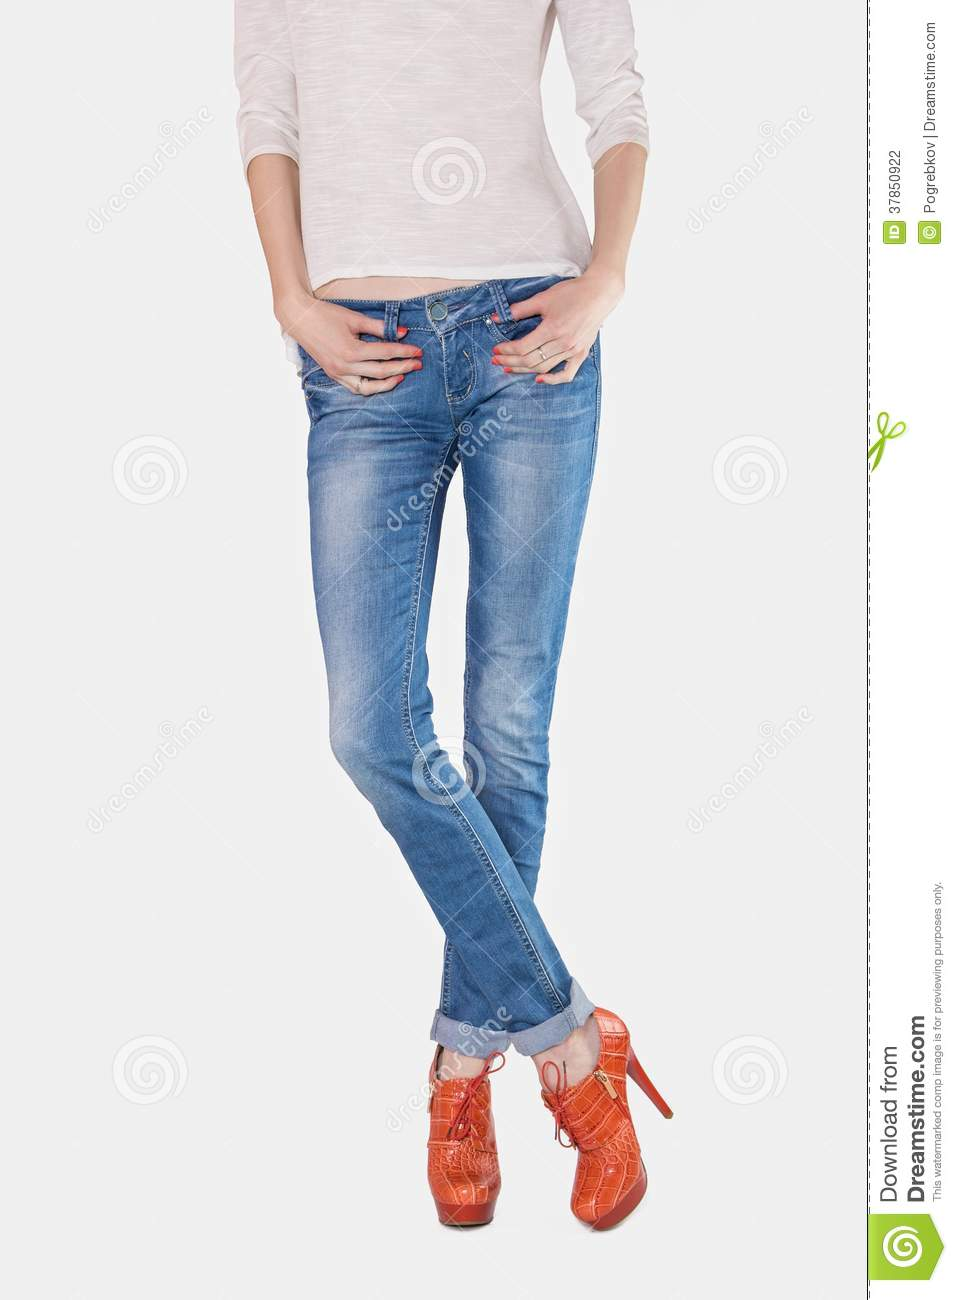 9c09c8179b Shapely female legs dressed in blue jeans and orange boots with high heels  on light background